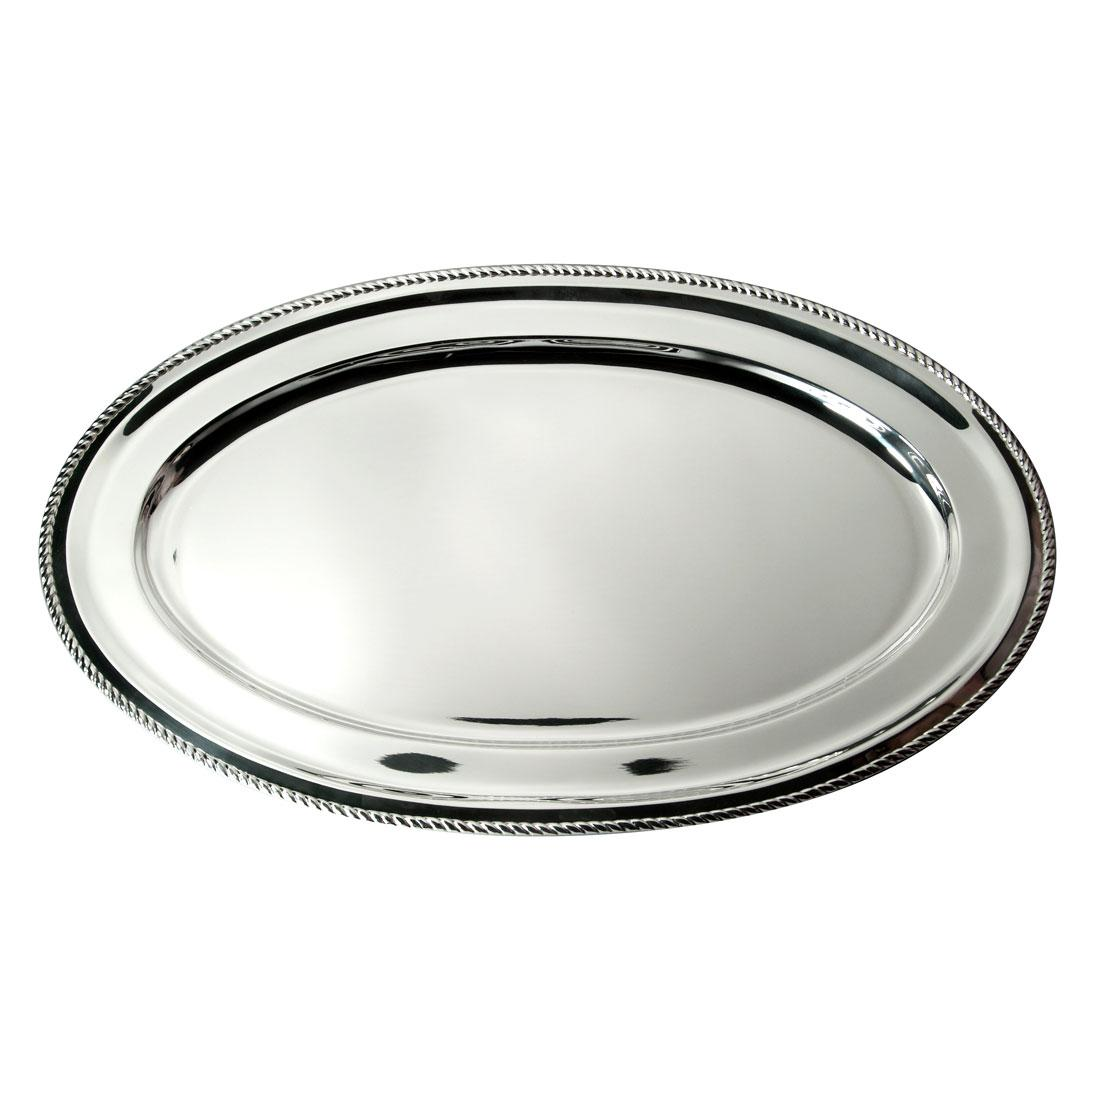 Orfevra 28 Inch Silver Plated Turkey Platter